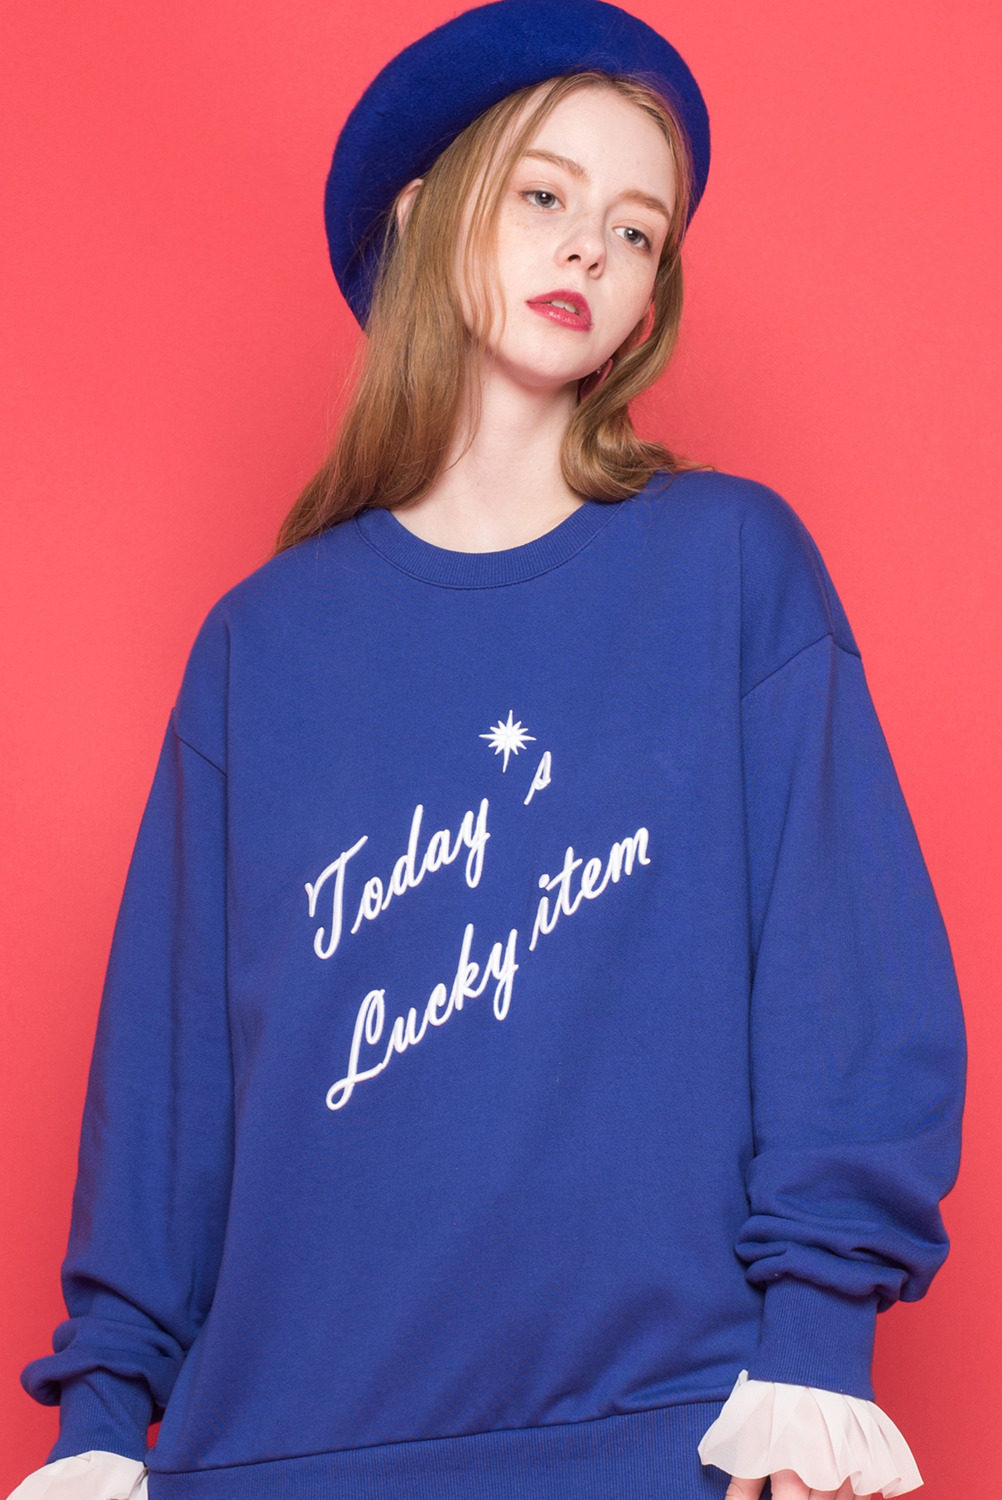 [UNISEX] Today's lucky item Sweatshirt (Blue)